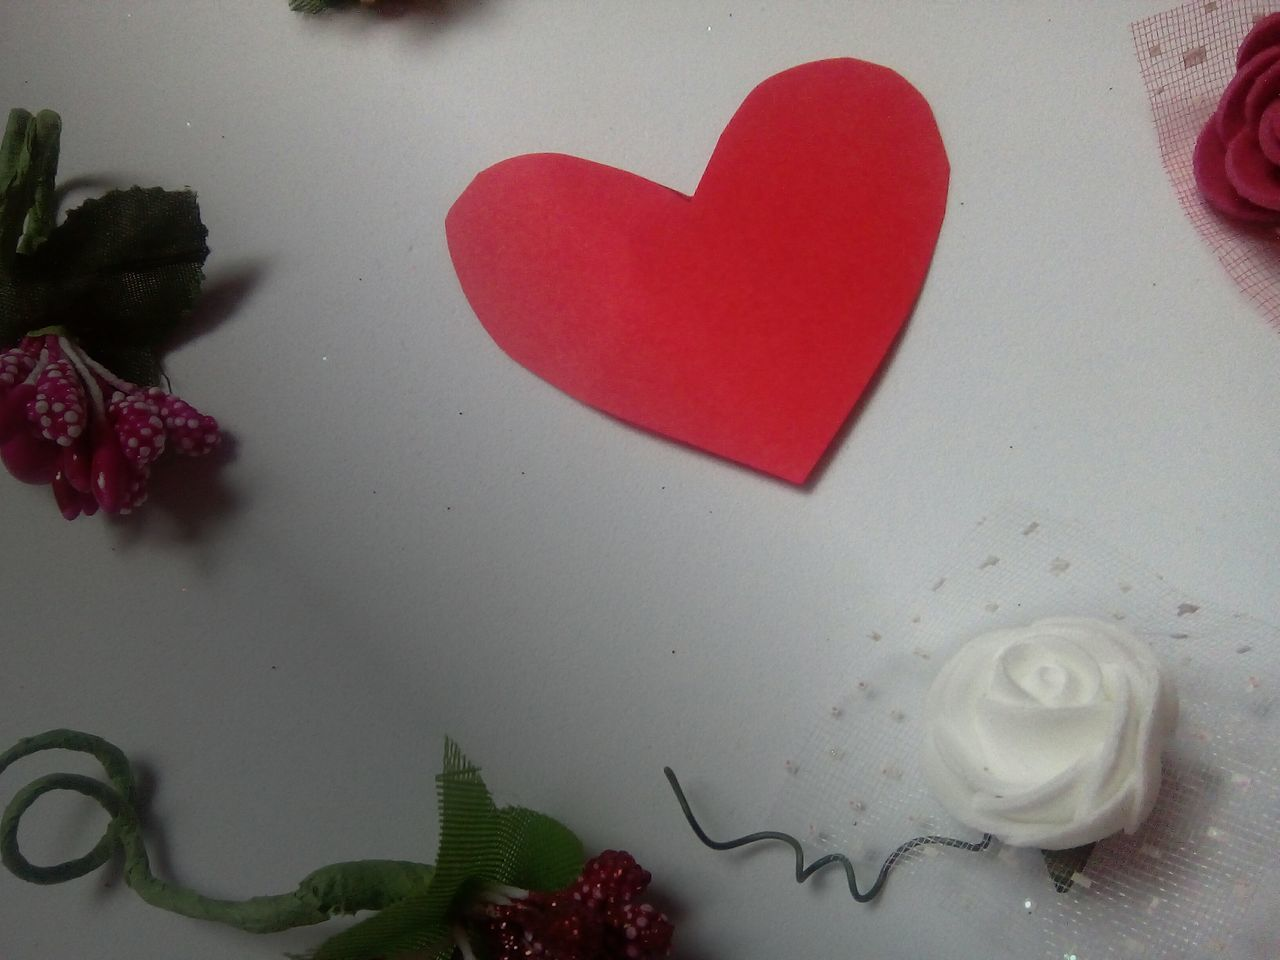 heart shape, love, indoors, red, food, table, food and drink, no people, freshness, sweet food, close-up, day